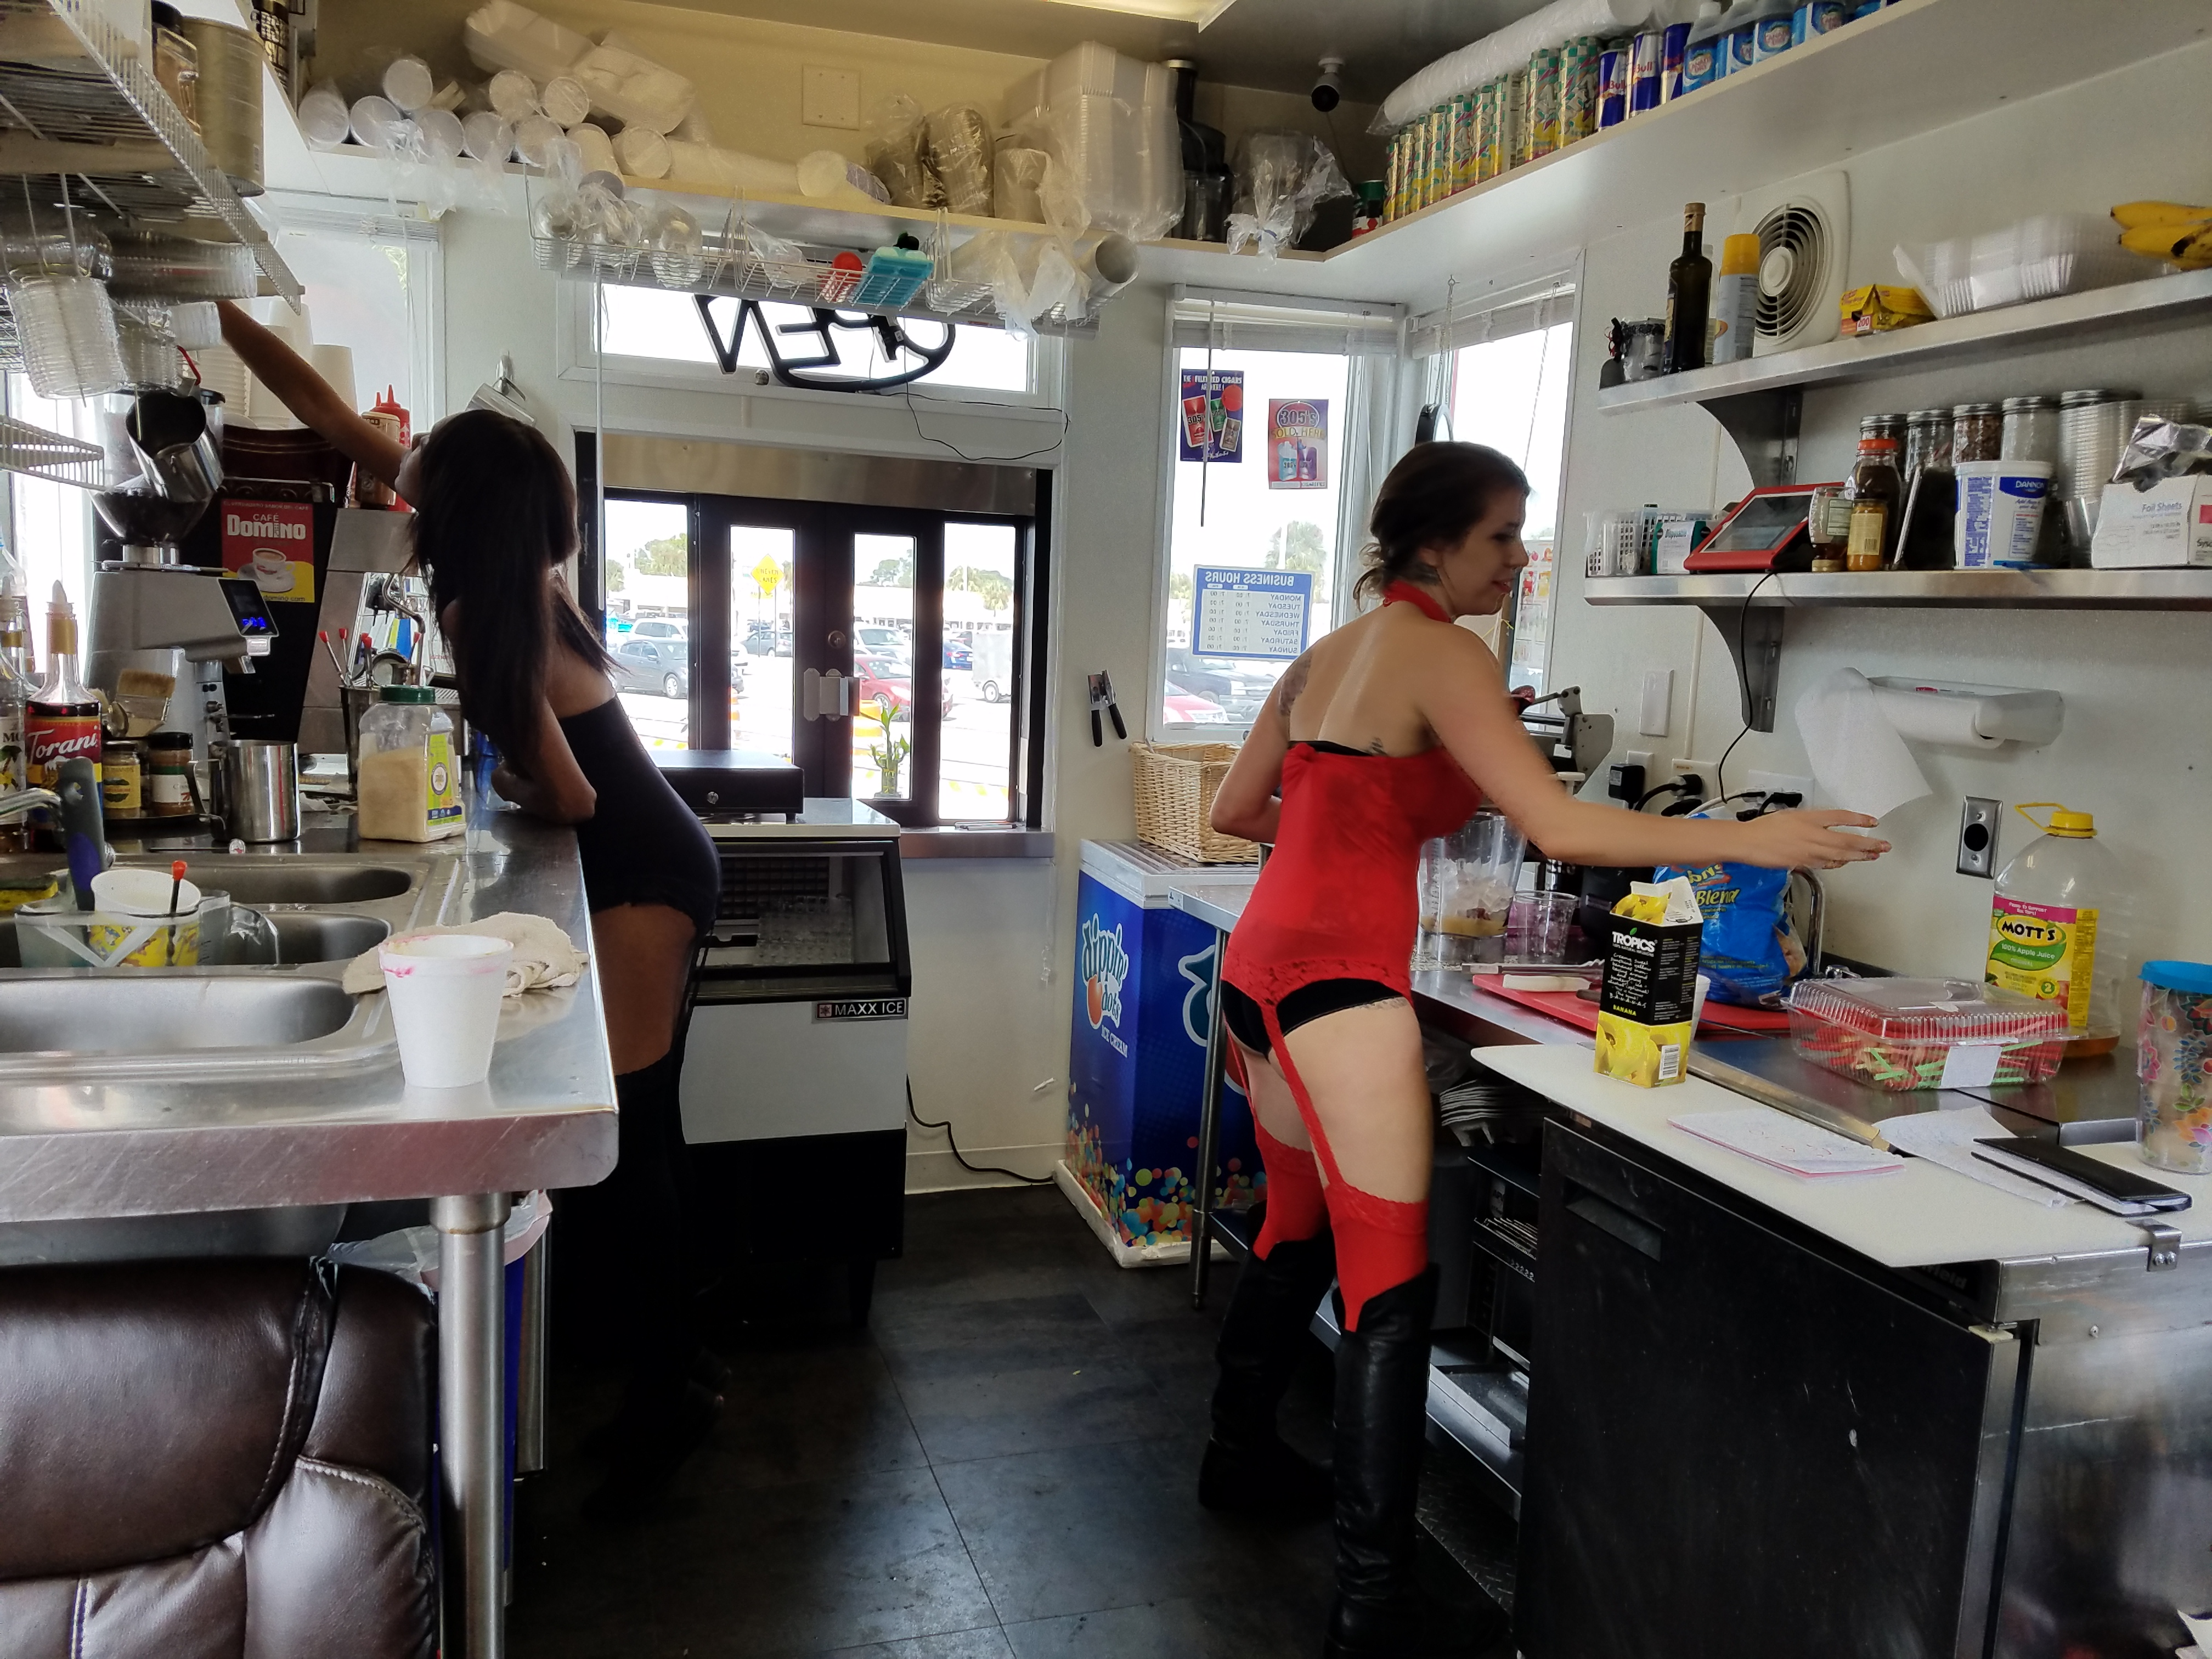 Coffee Hot  Uniforms Racy At Charlotte Harbor Business